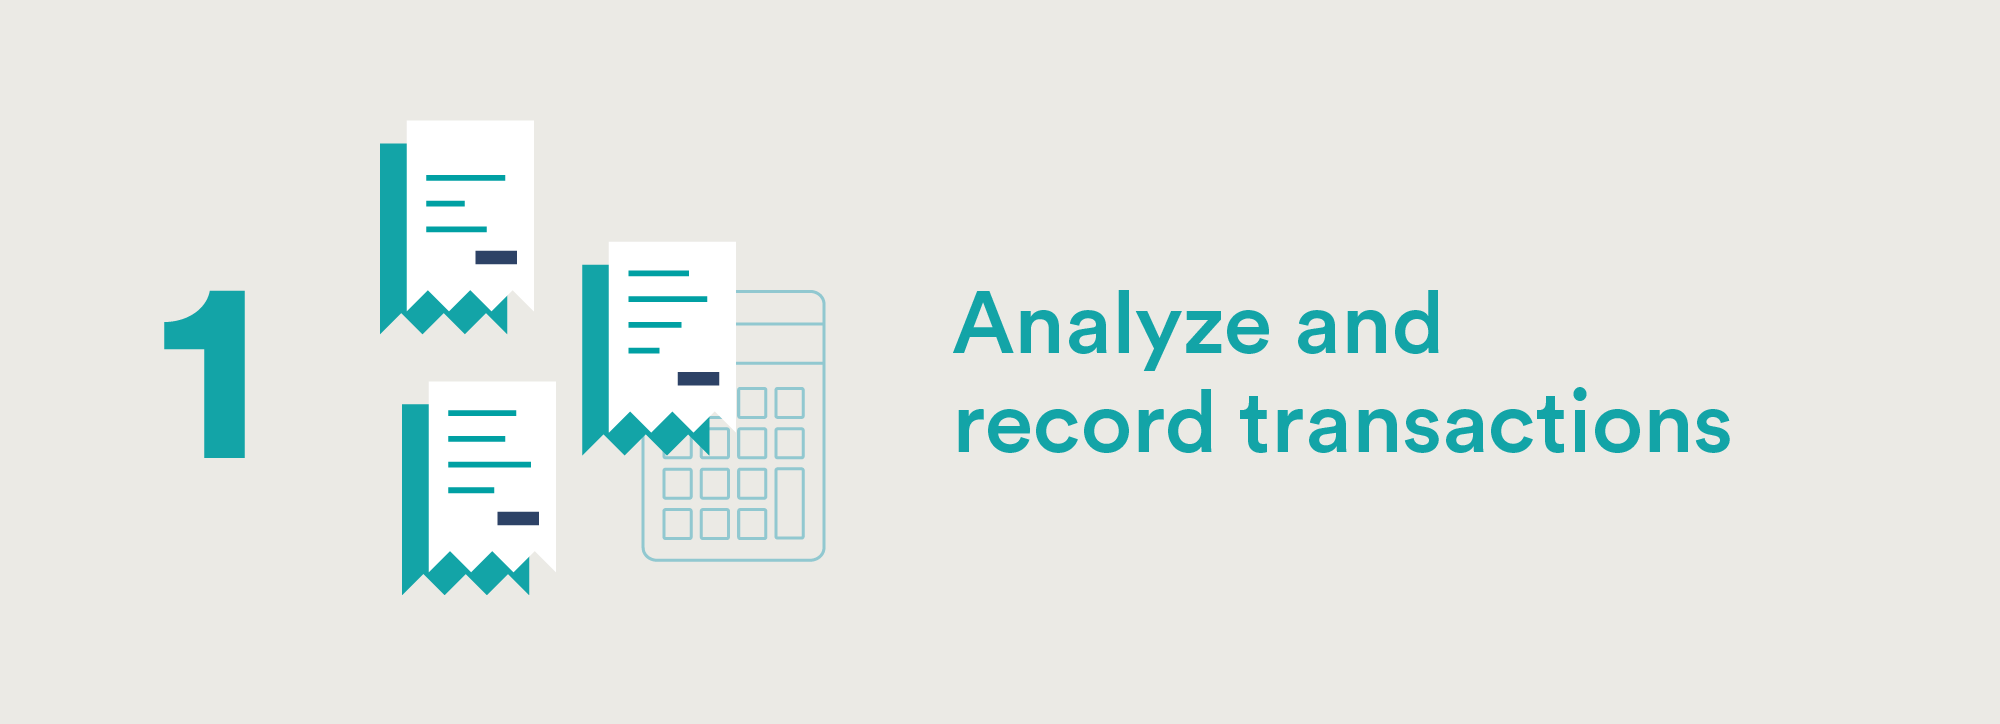 Accounting Cycle Step One: Analyze and Record Transactions